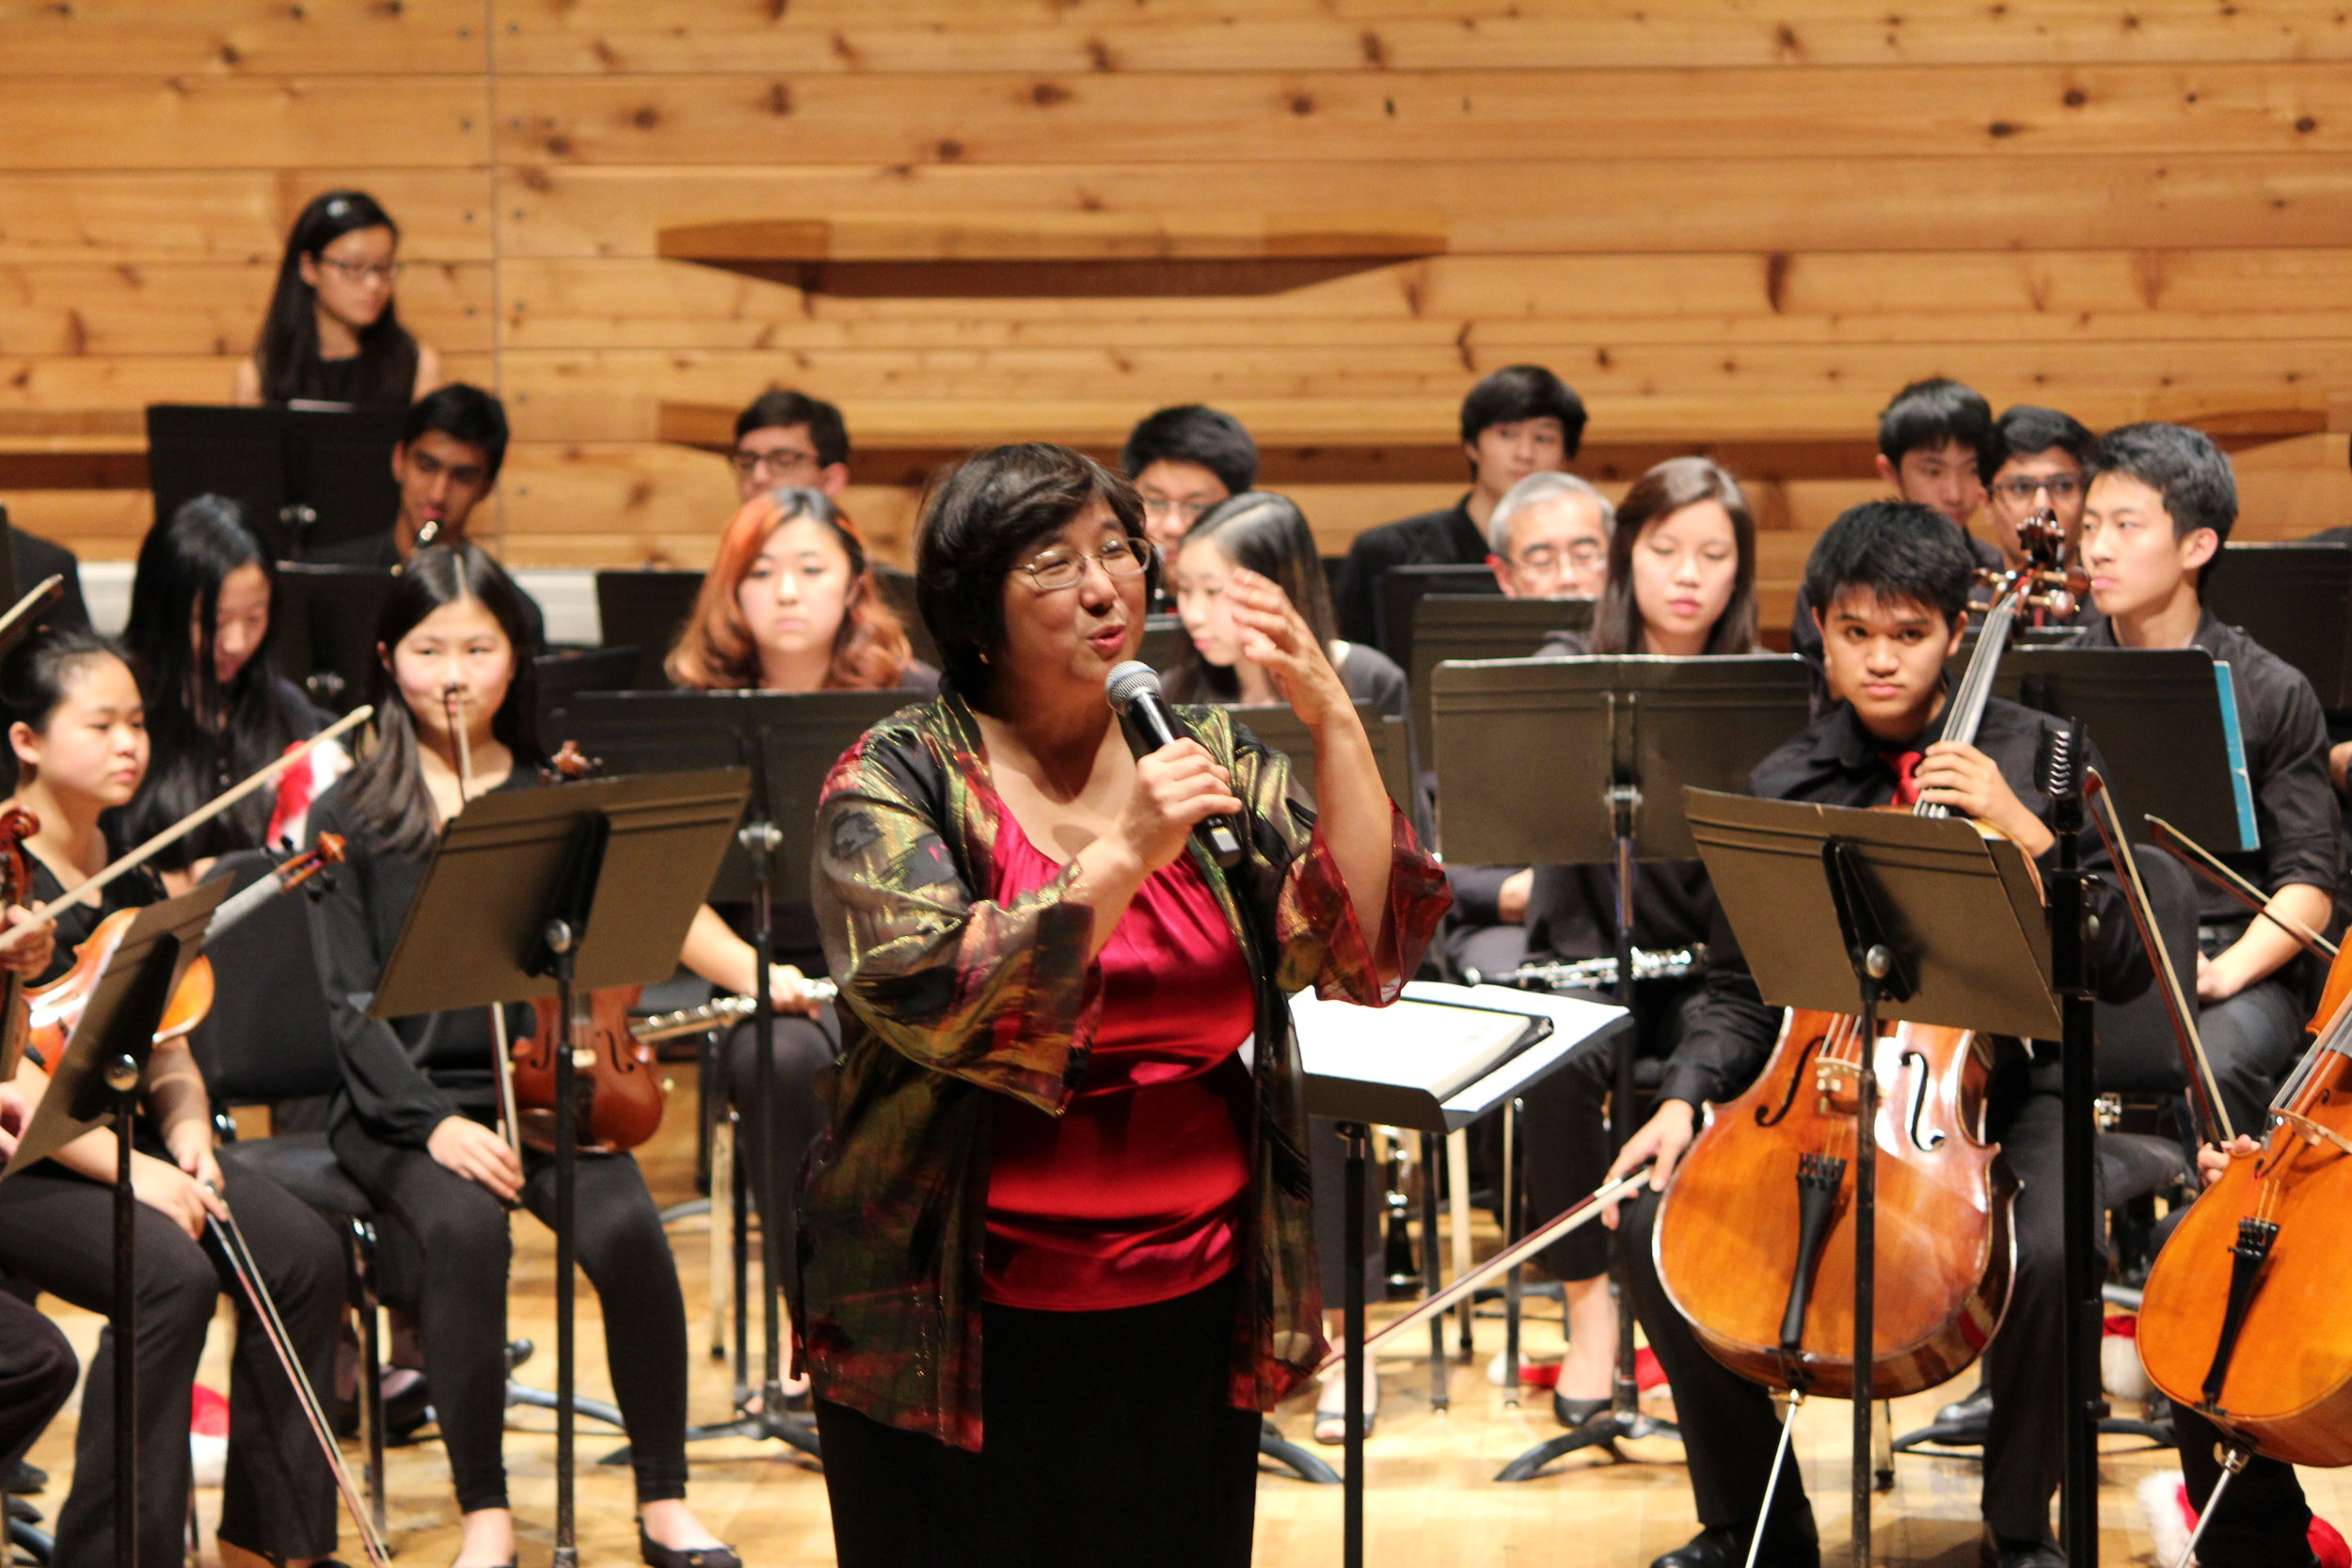 Ms. Lin introducing the Sinfonia pieces